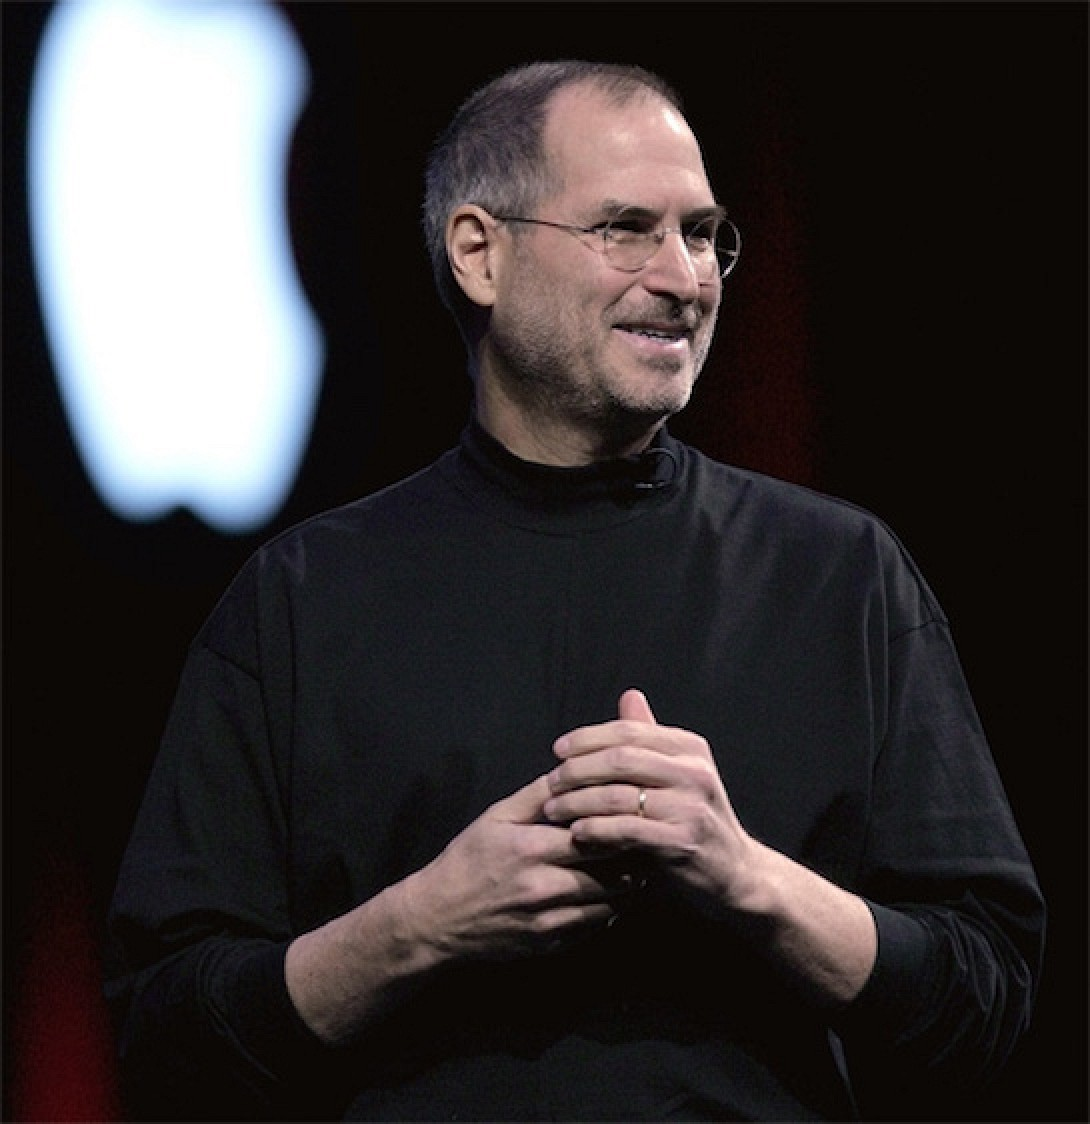 Steve Jobs Would Have Been 62 Today While MacRumors Turns